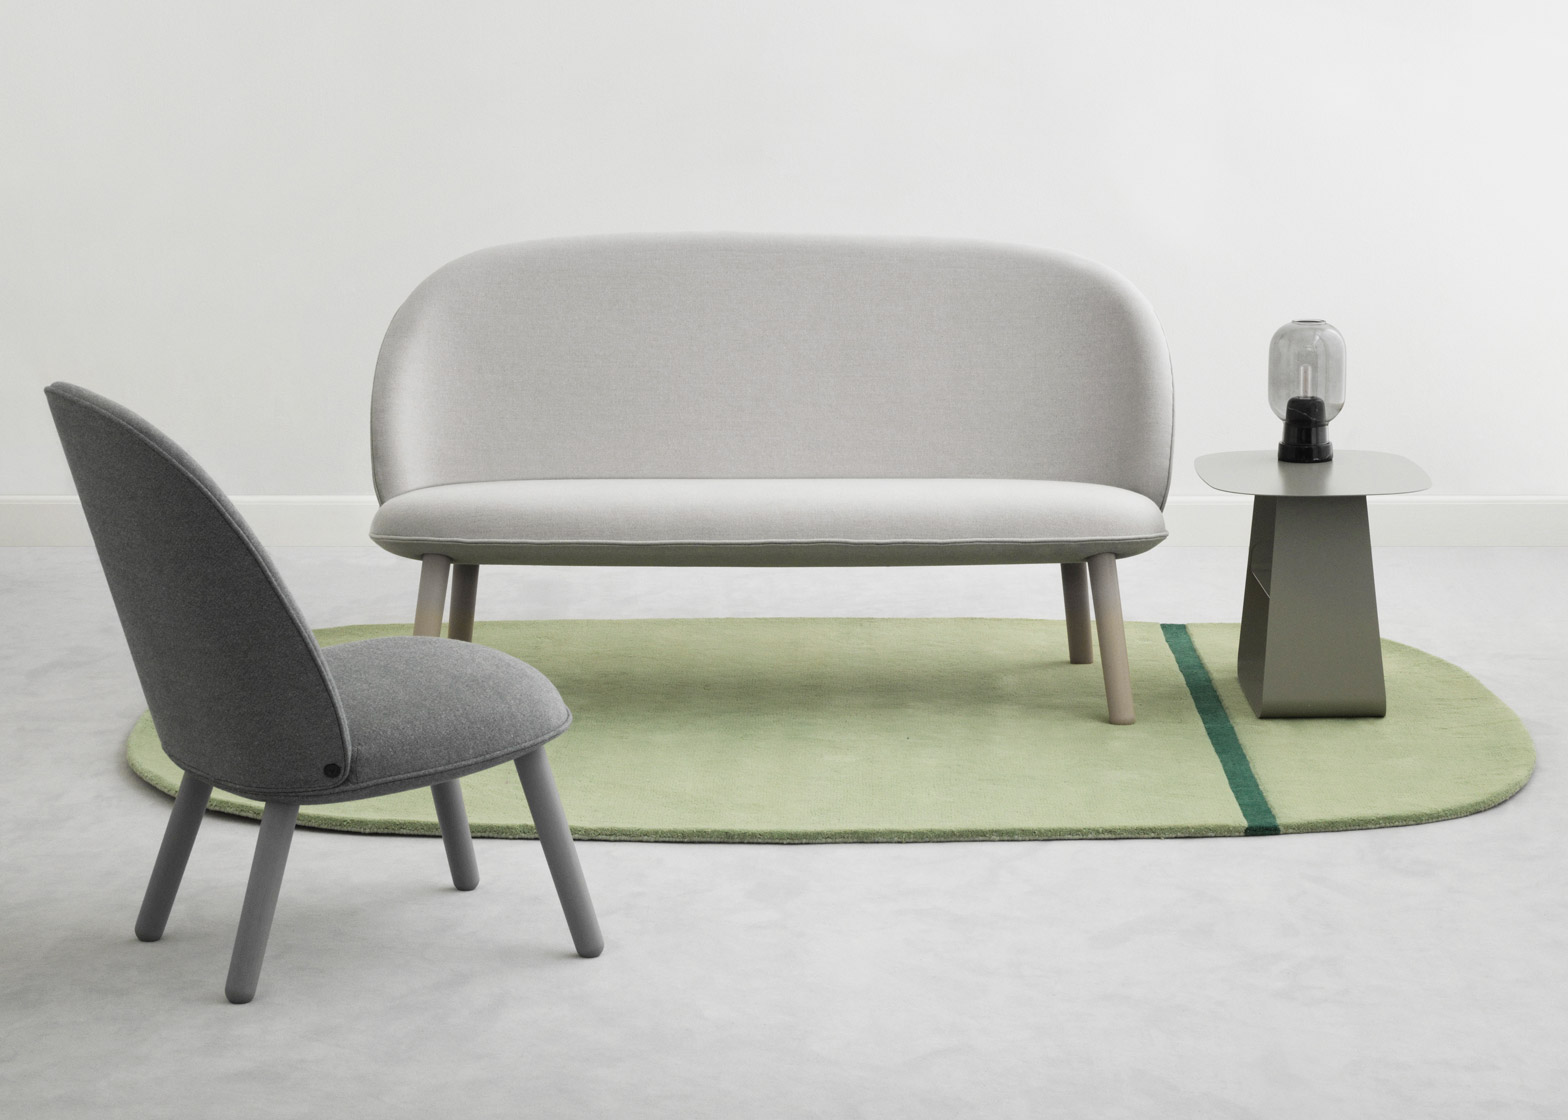 Ace collection by Normann Copenhagen and Hans Horneman